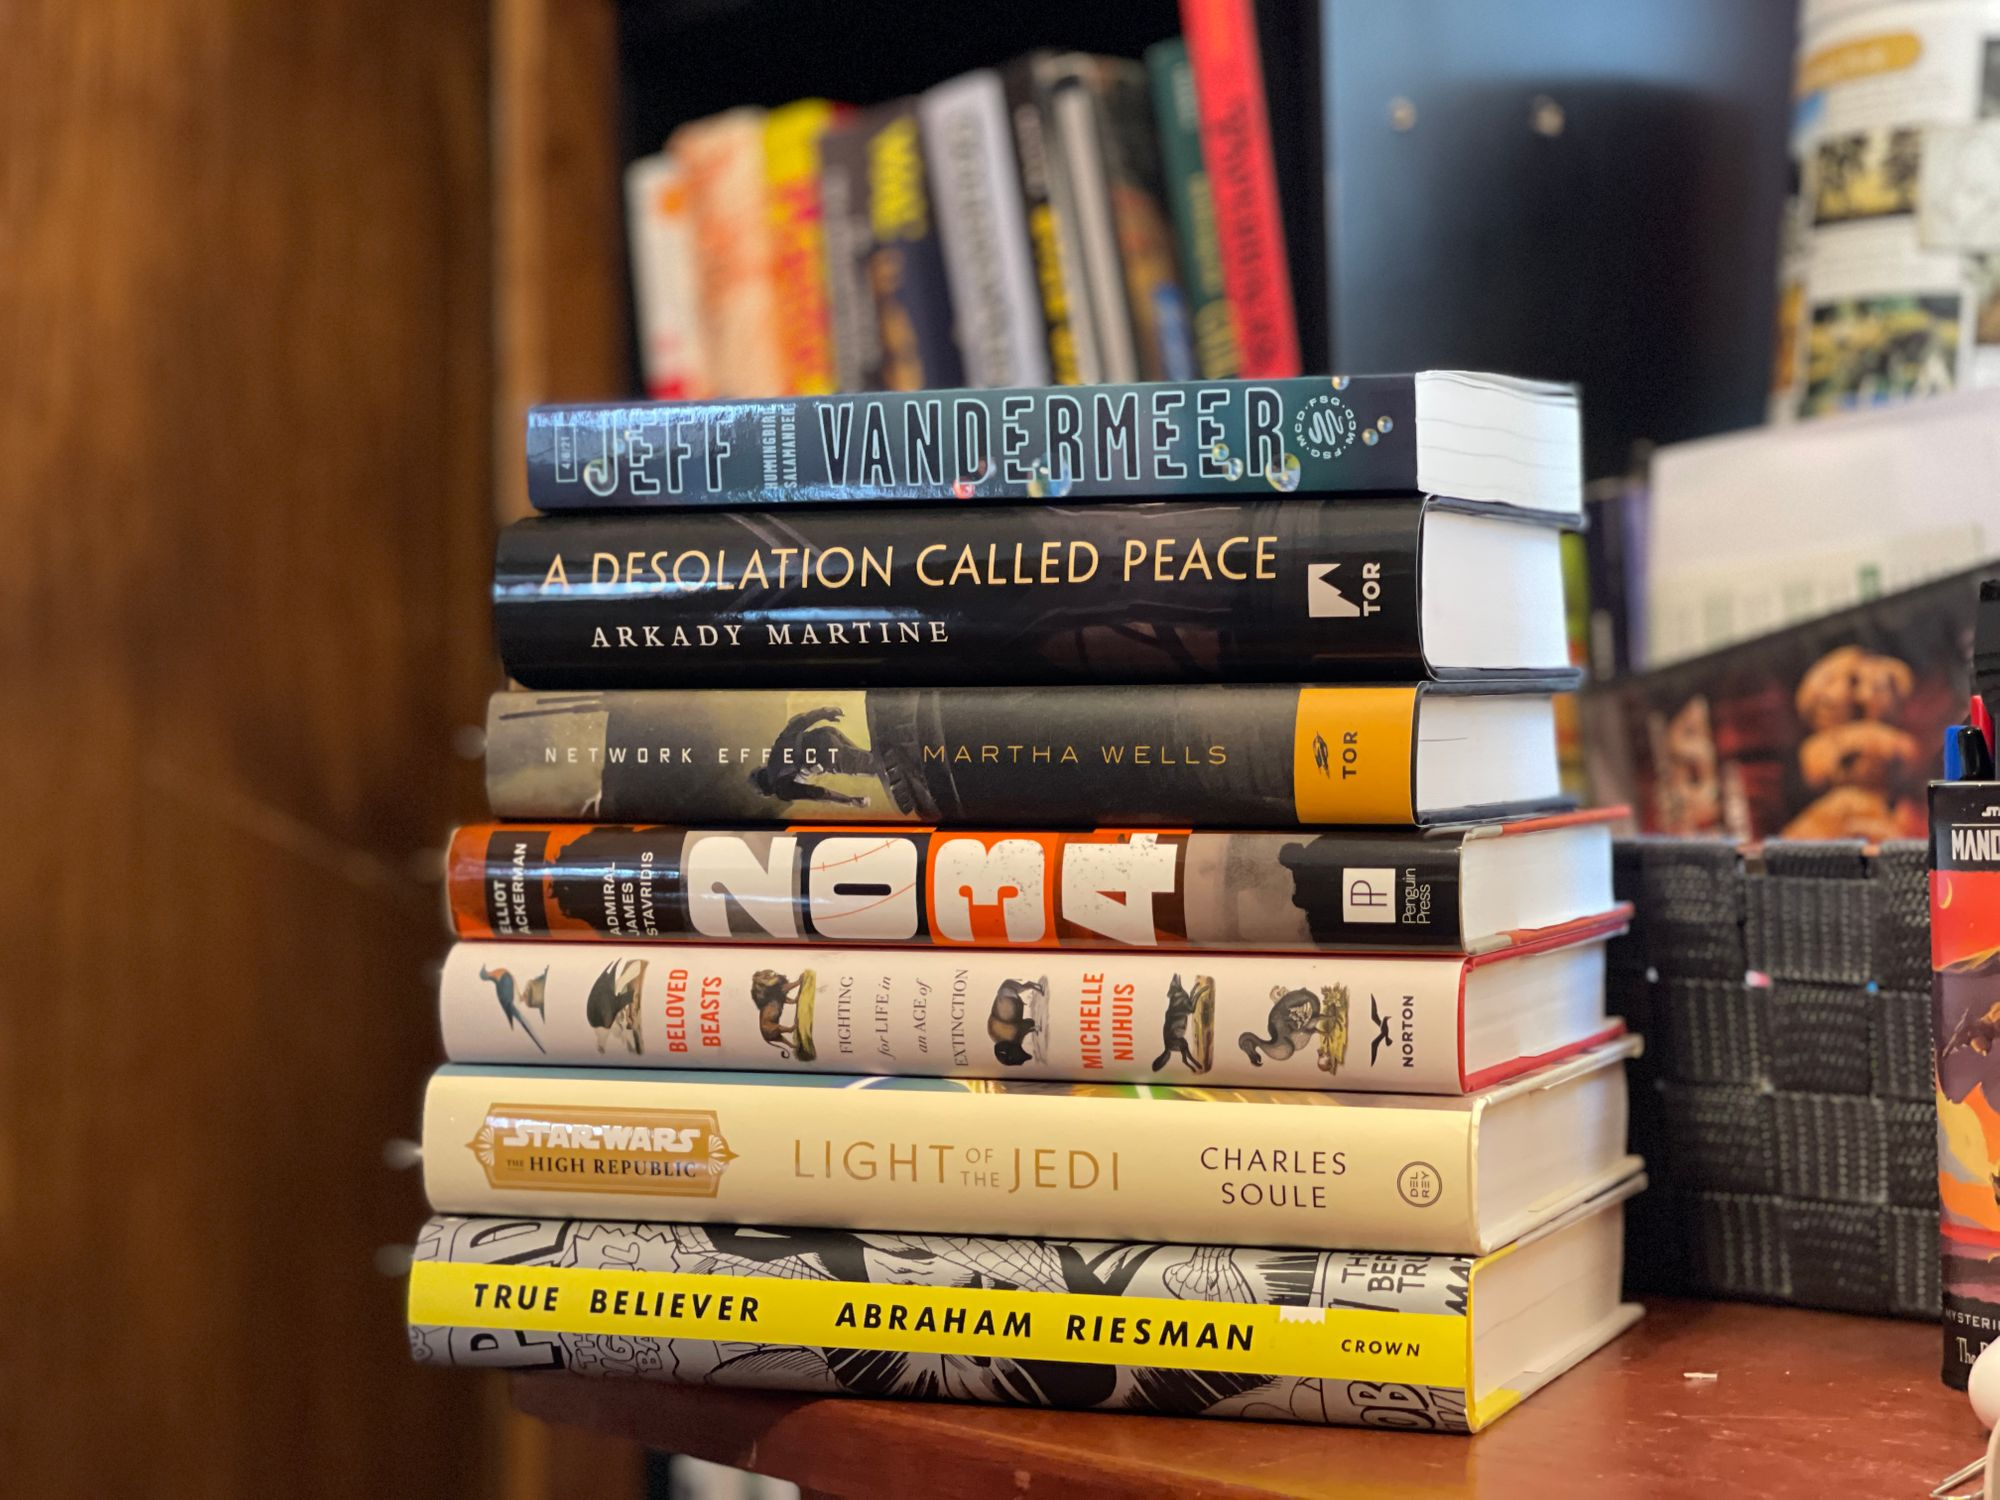 A stack of books sitting on a desk